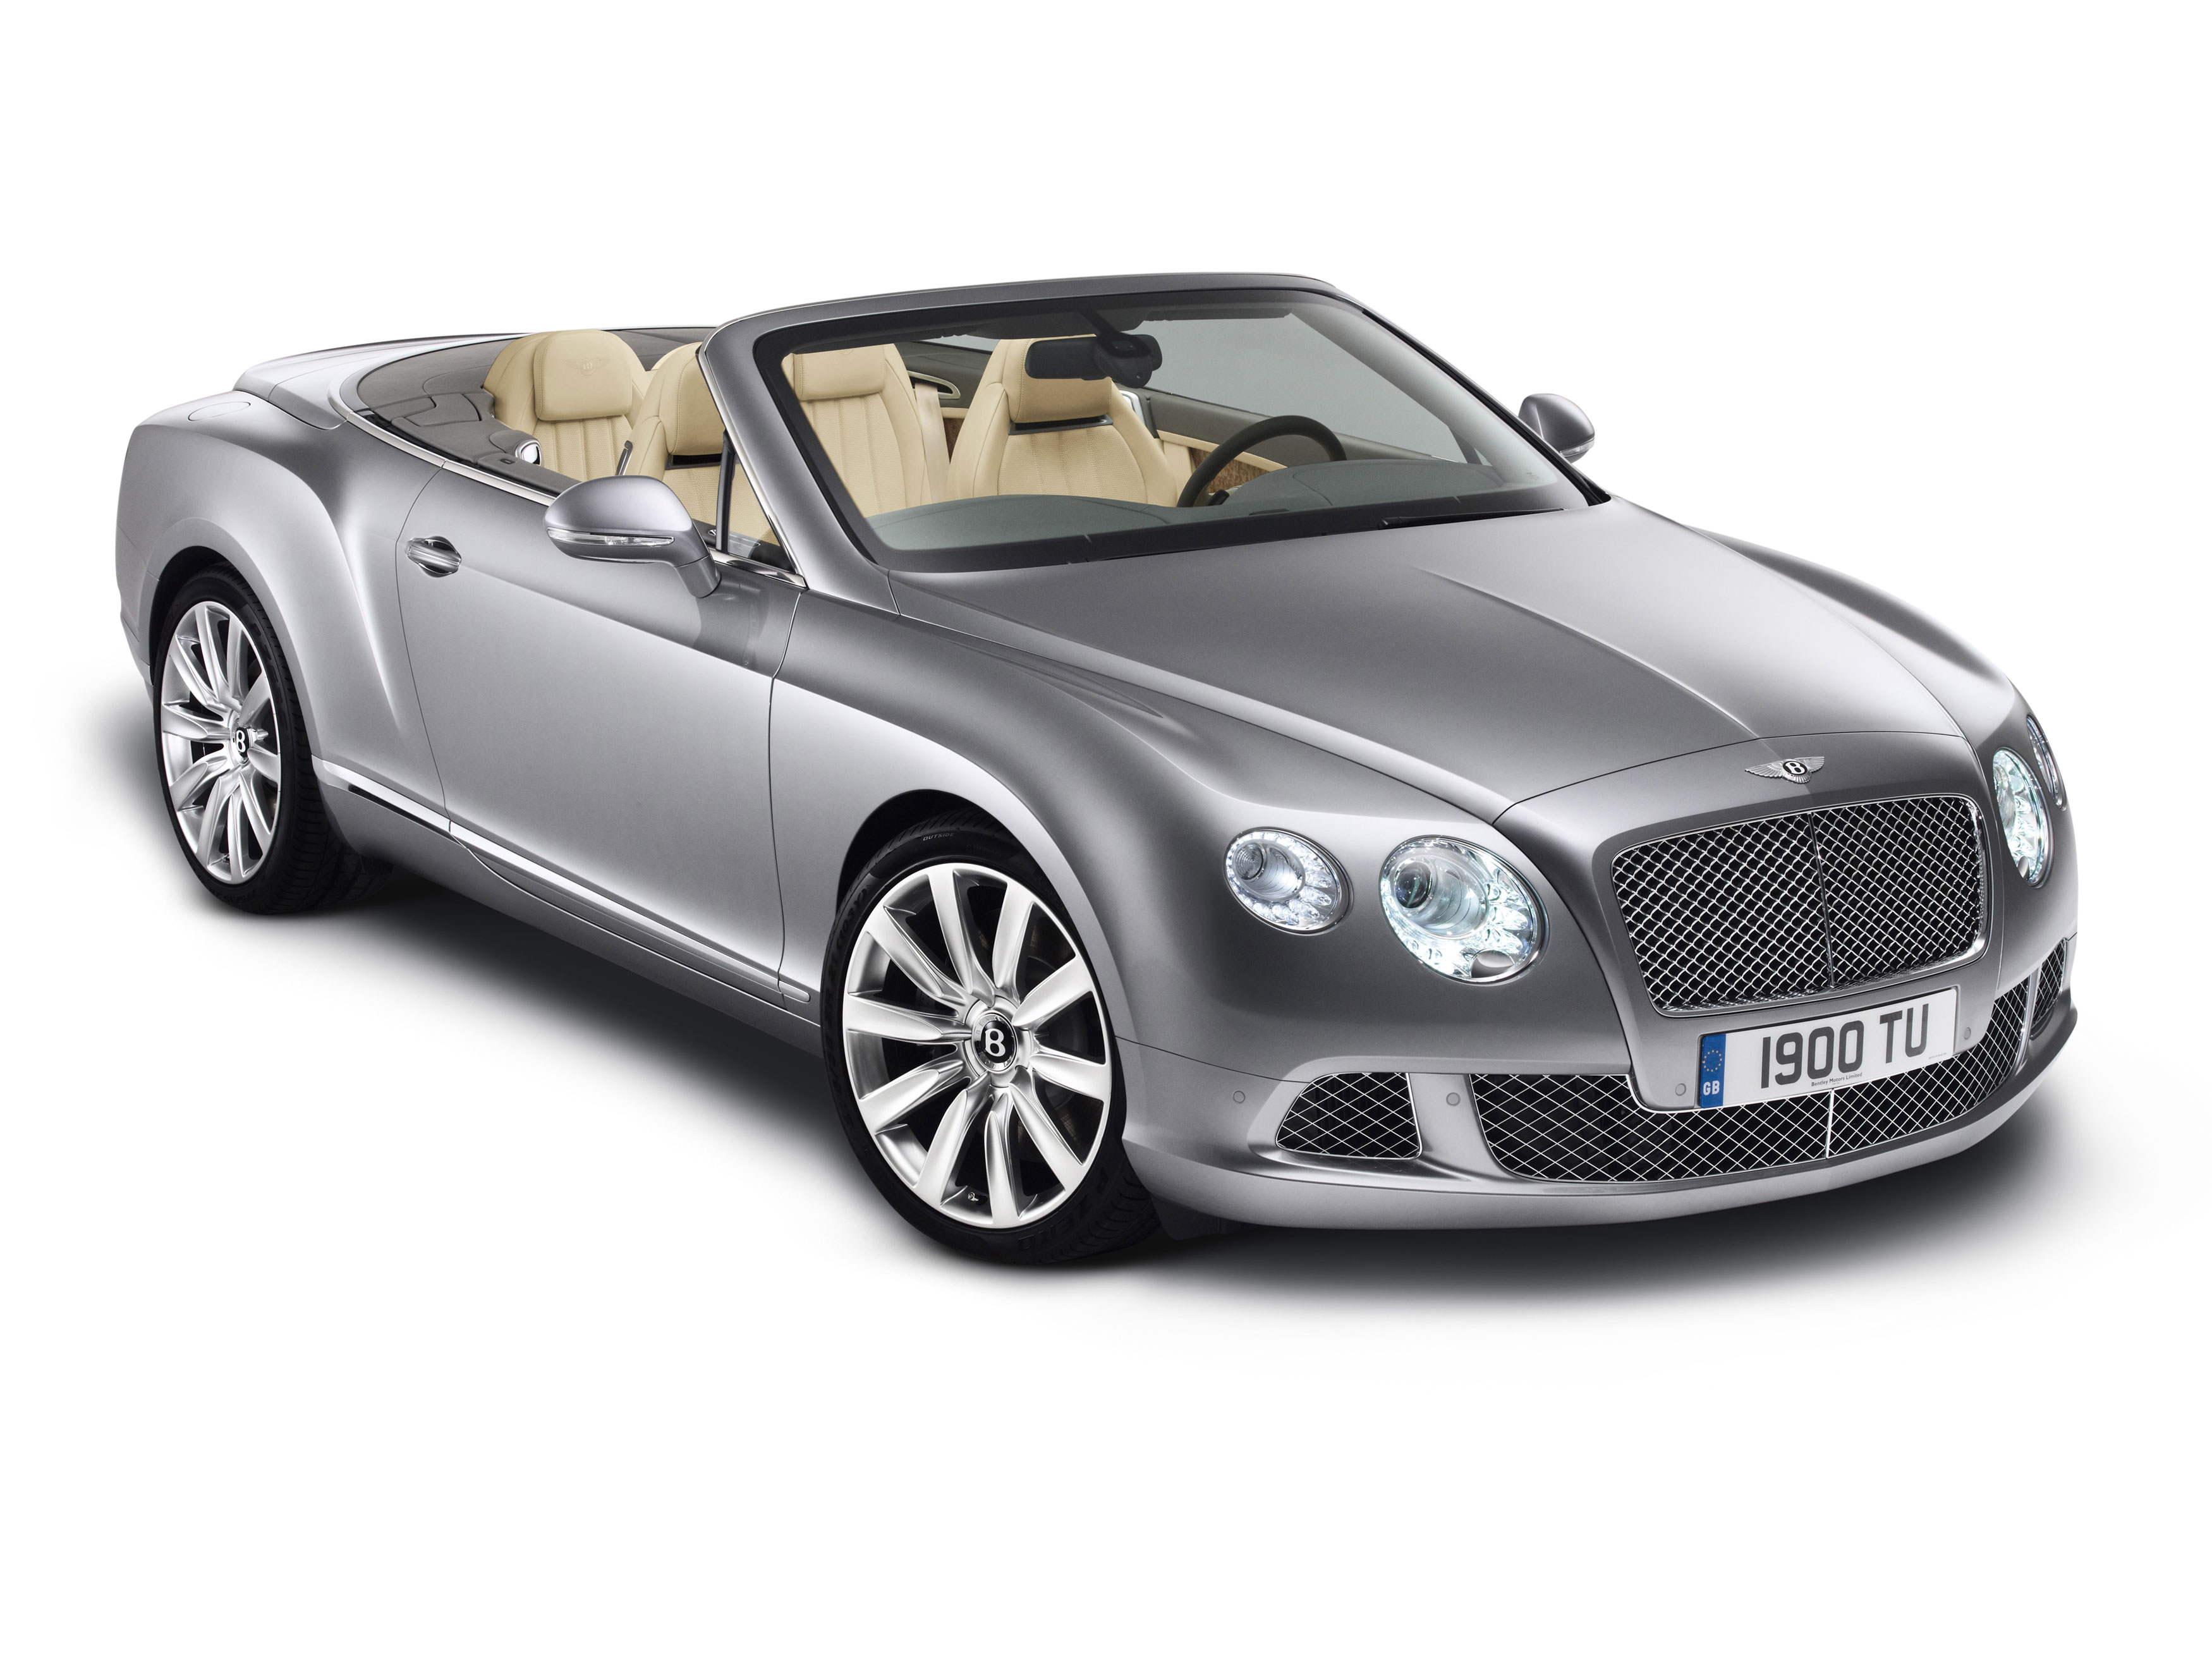 Bentley Continental GT Convertable cabriolet model